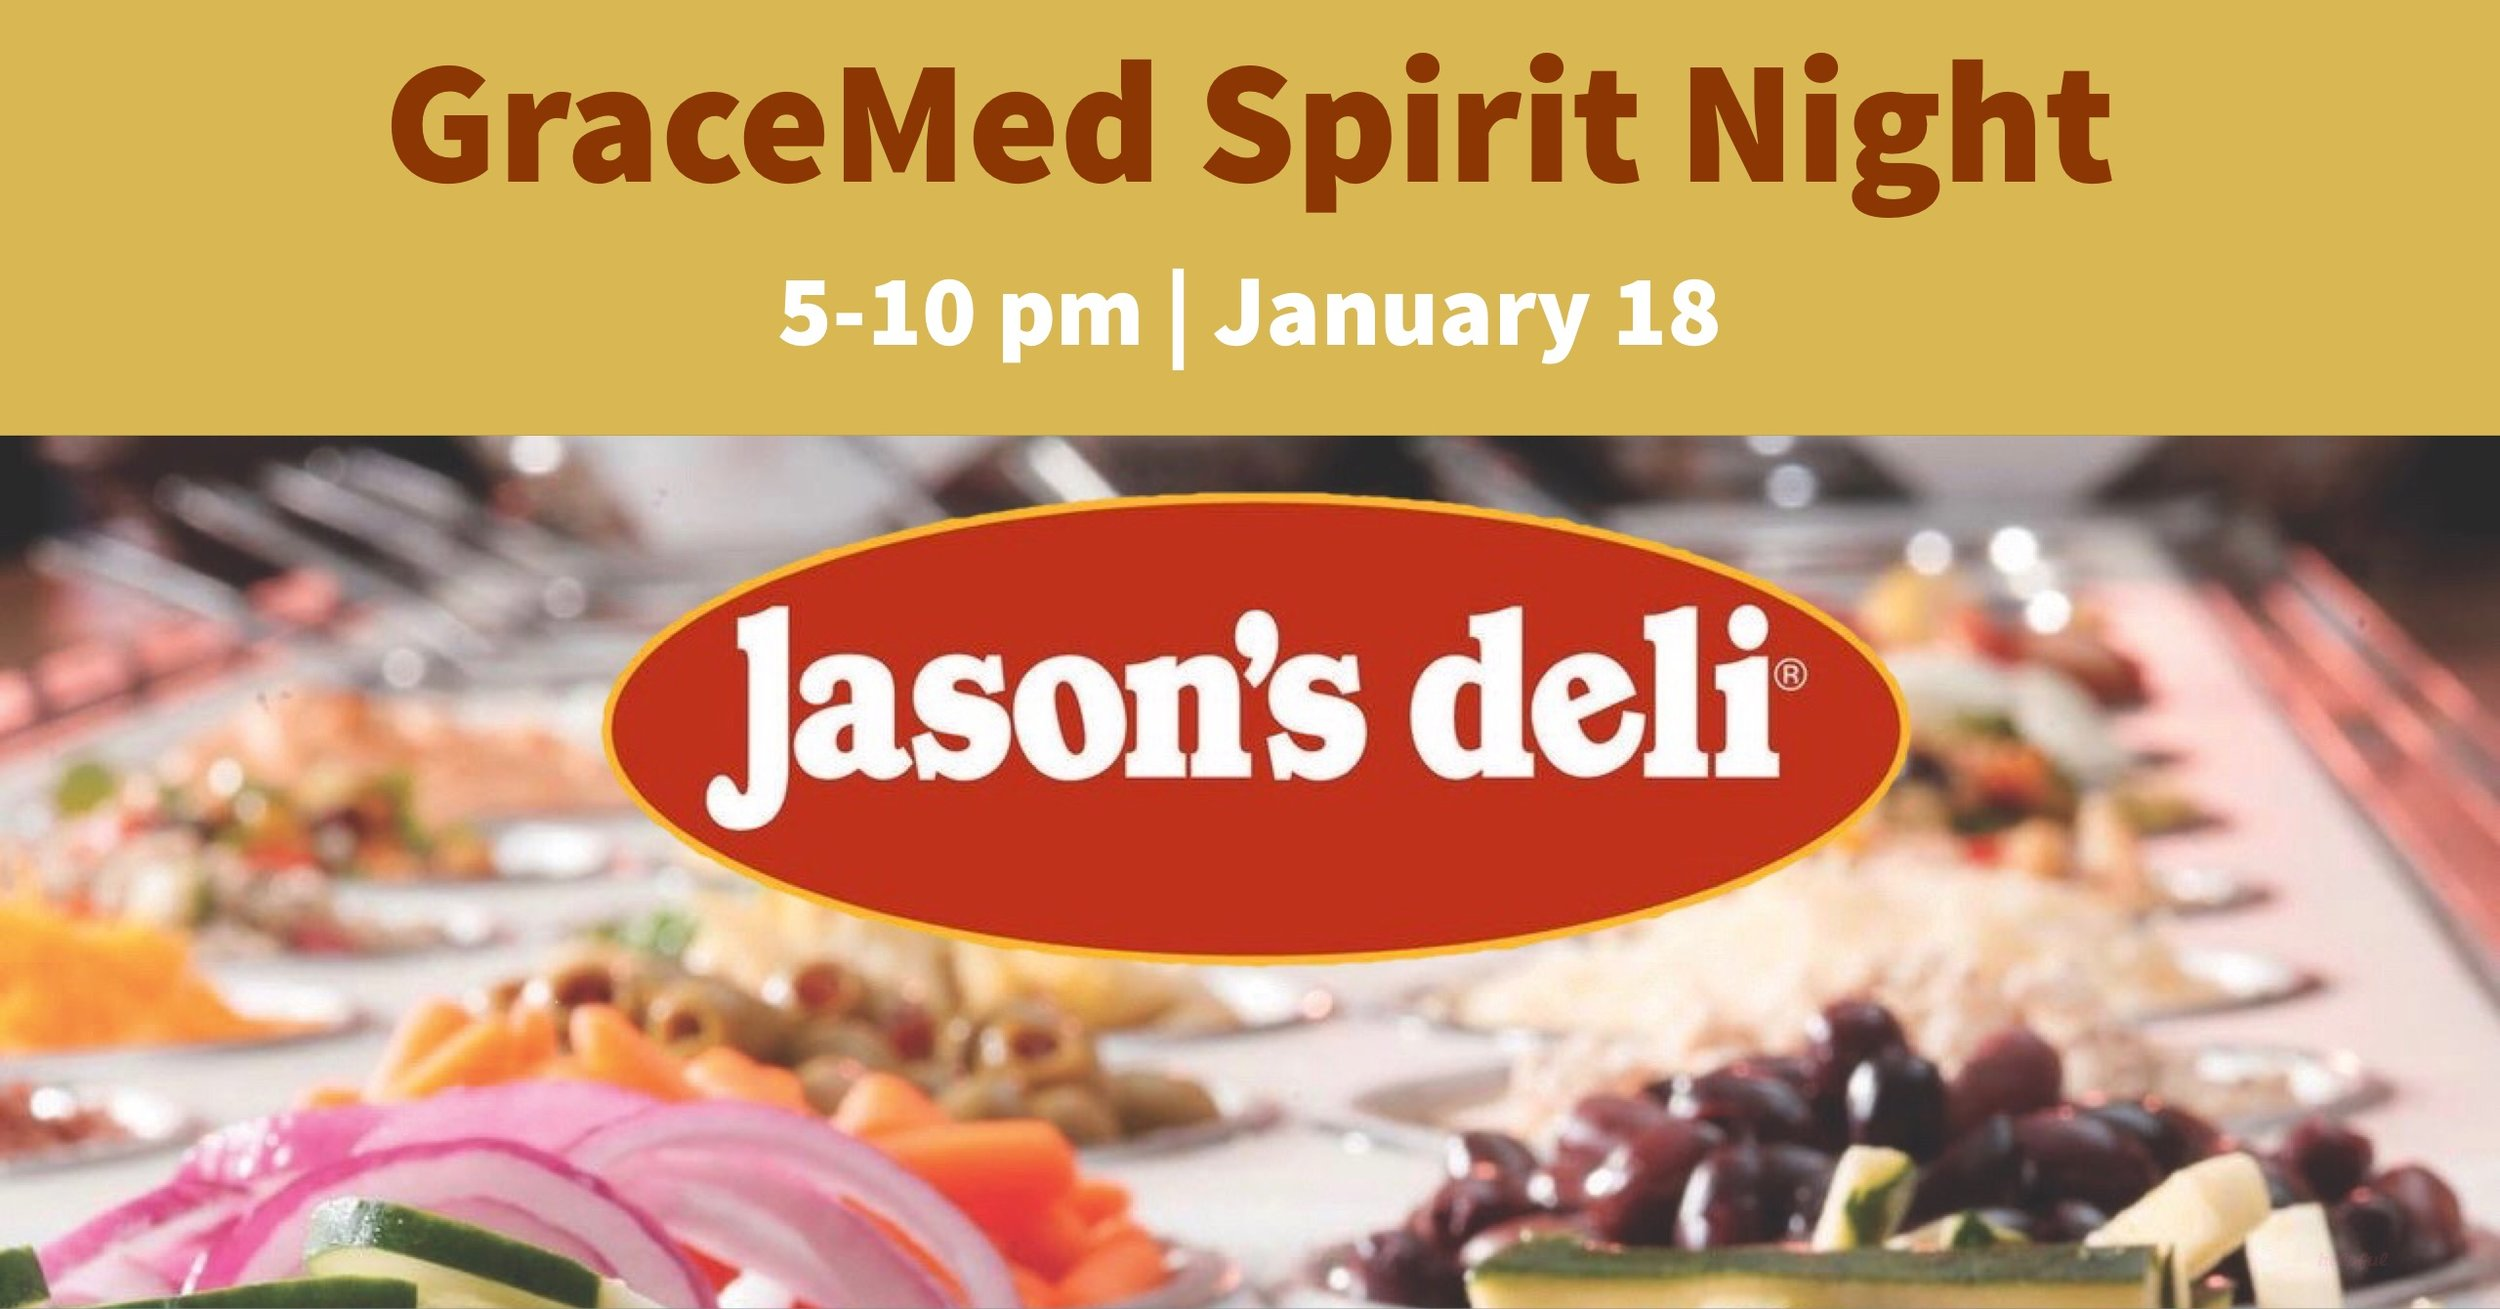 GraceMed Spirit Night at Jason's Deli